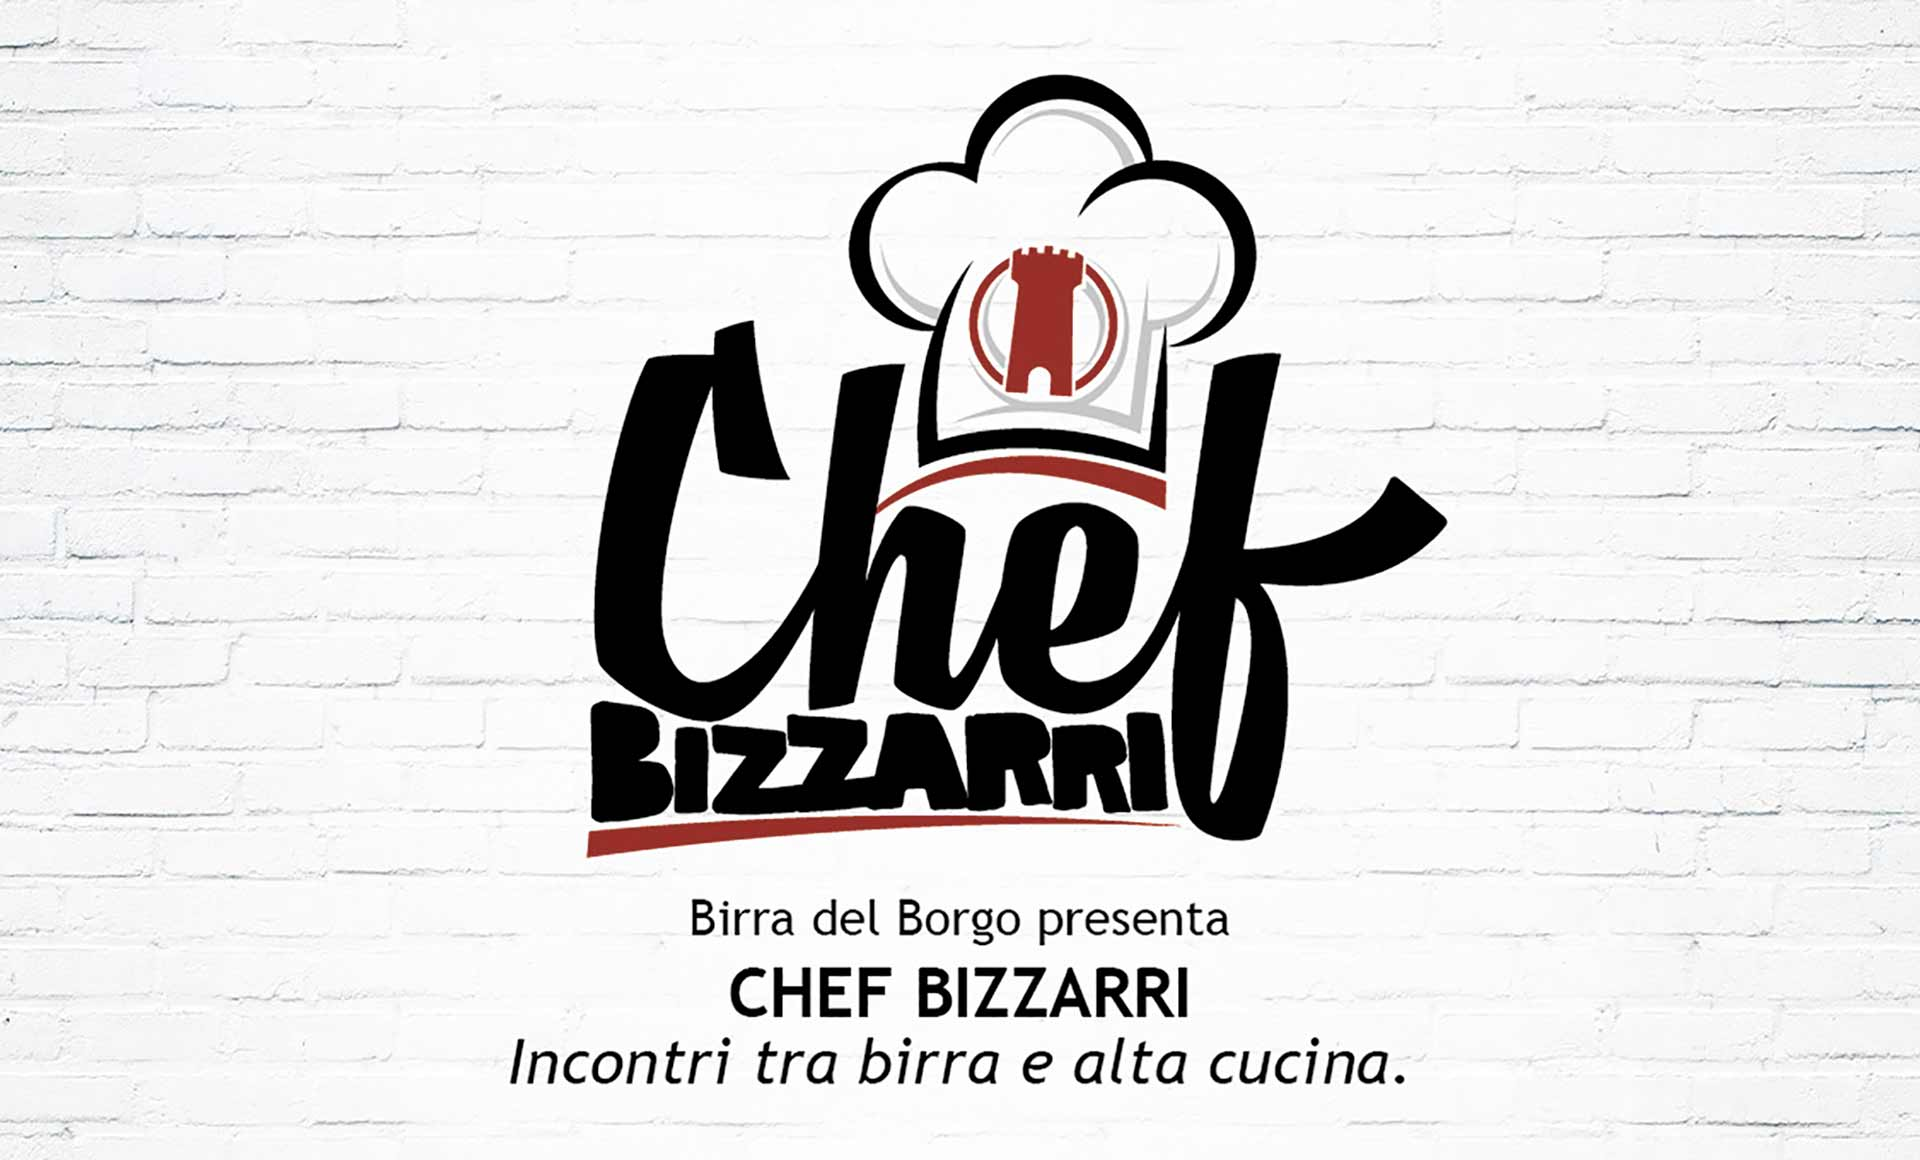 chef bizzarri